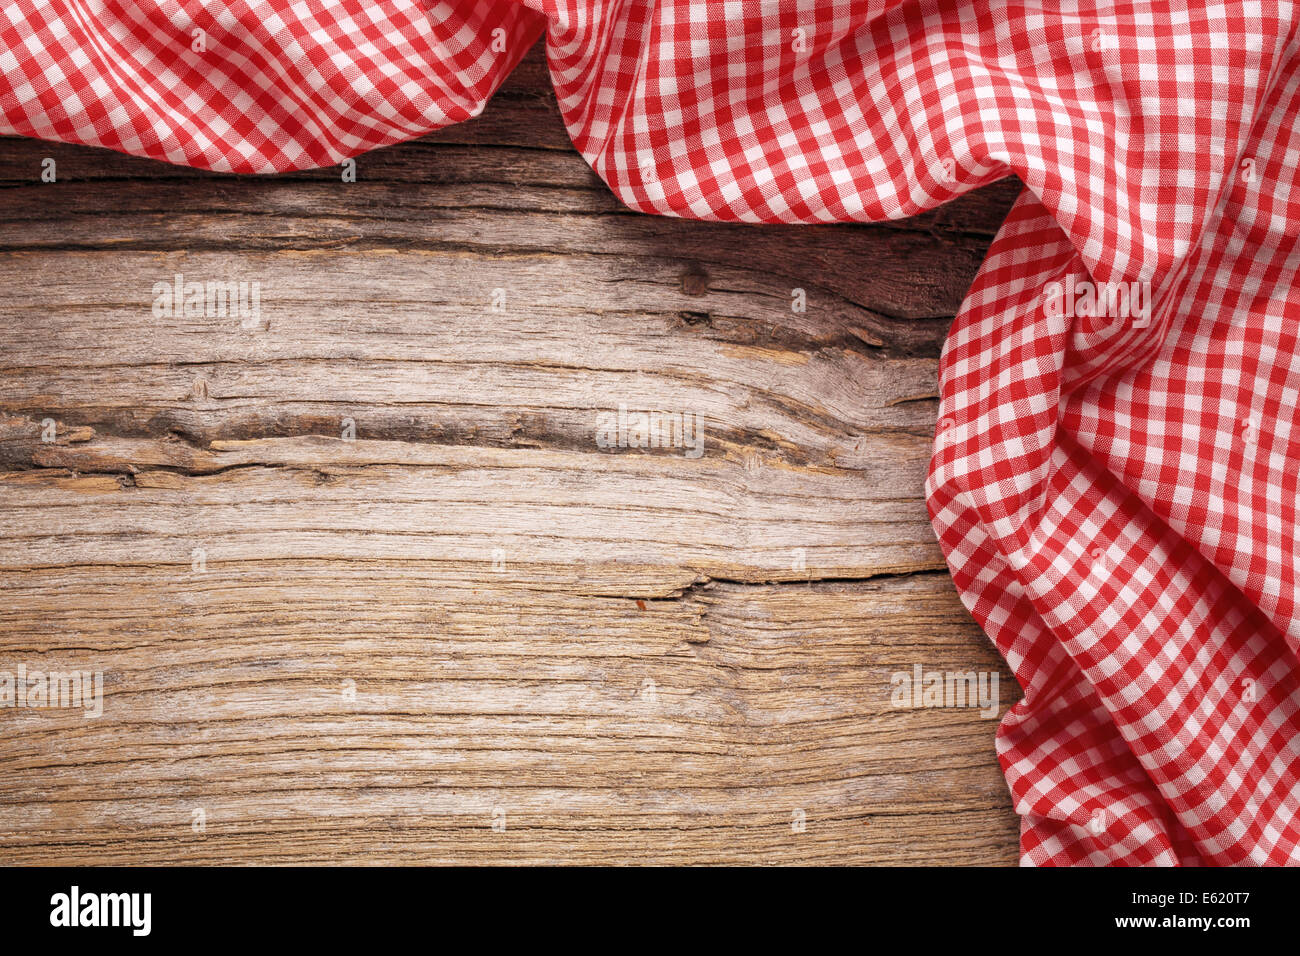 Checkered Tablecloth On Wooden Table Stock Photo 72573991